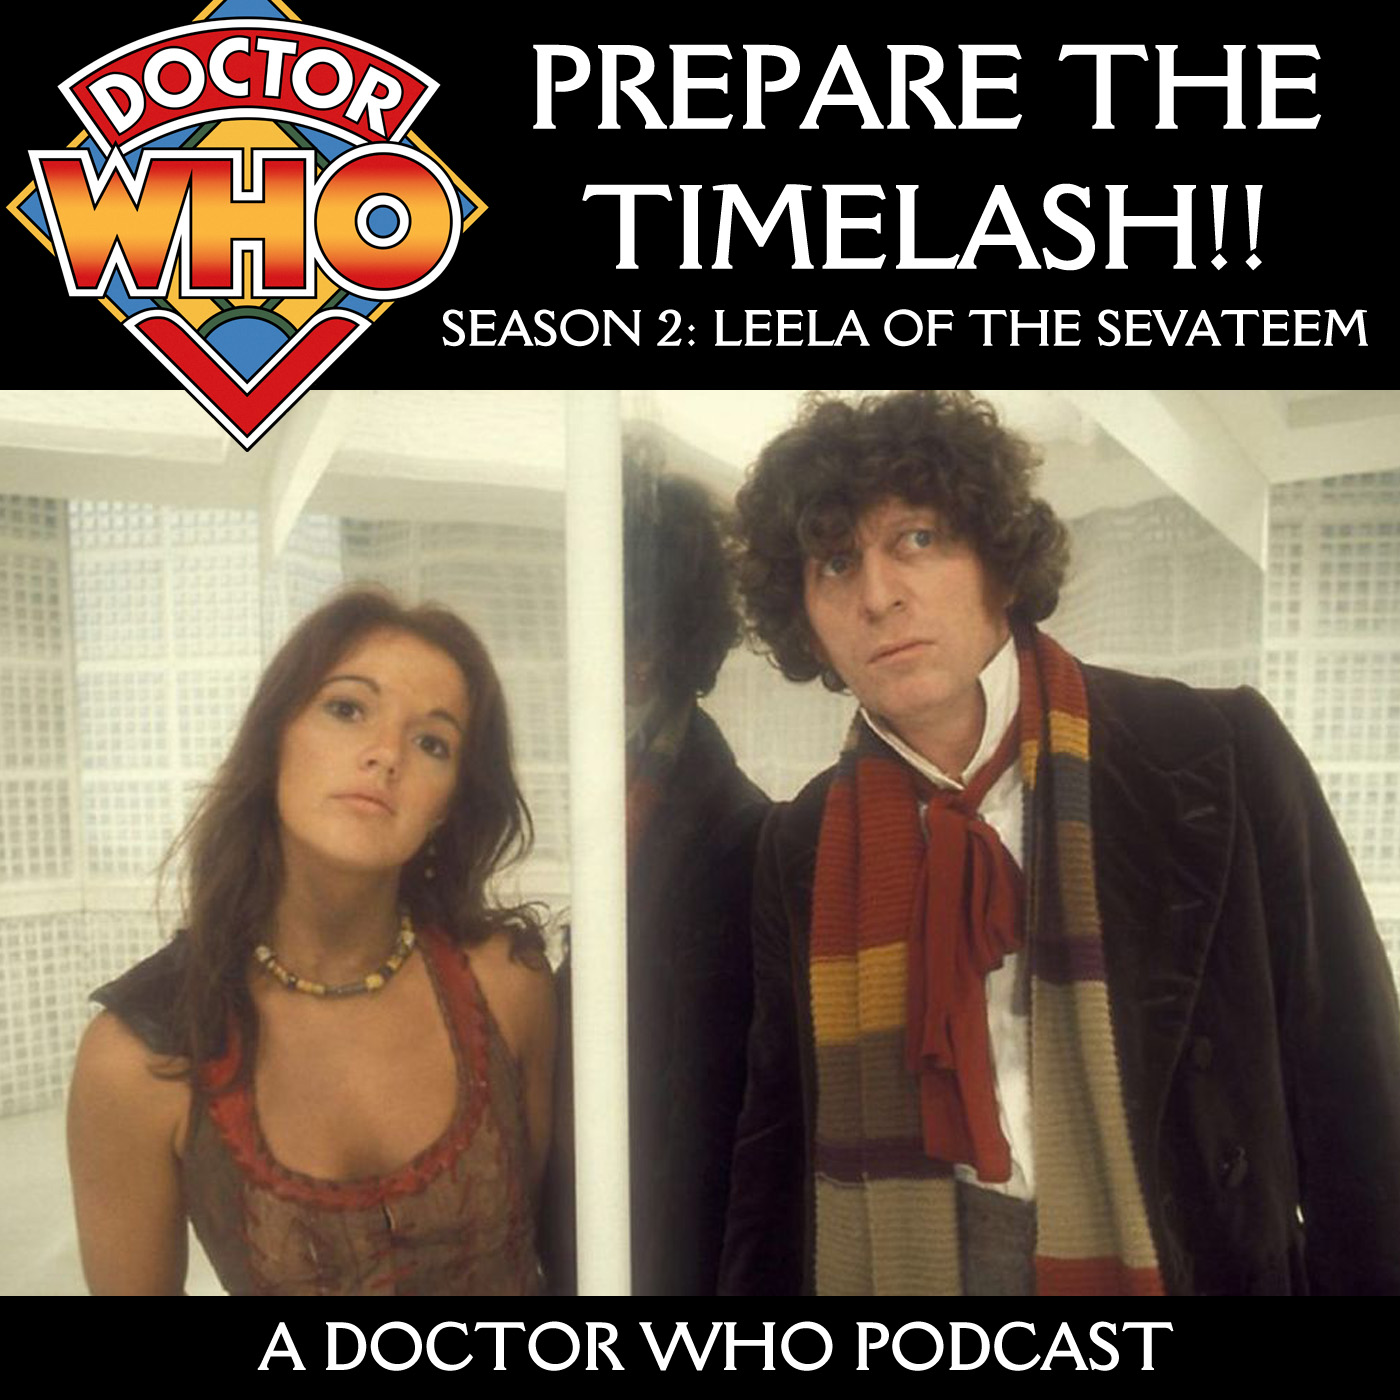 Doctor Who: Prepare the Timelash!! show art